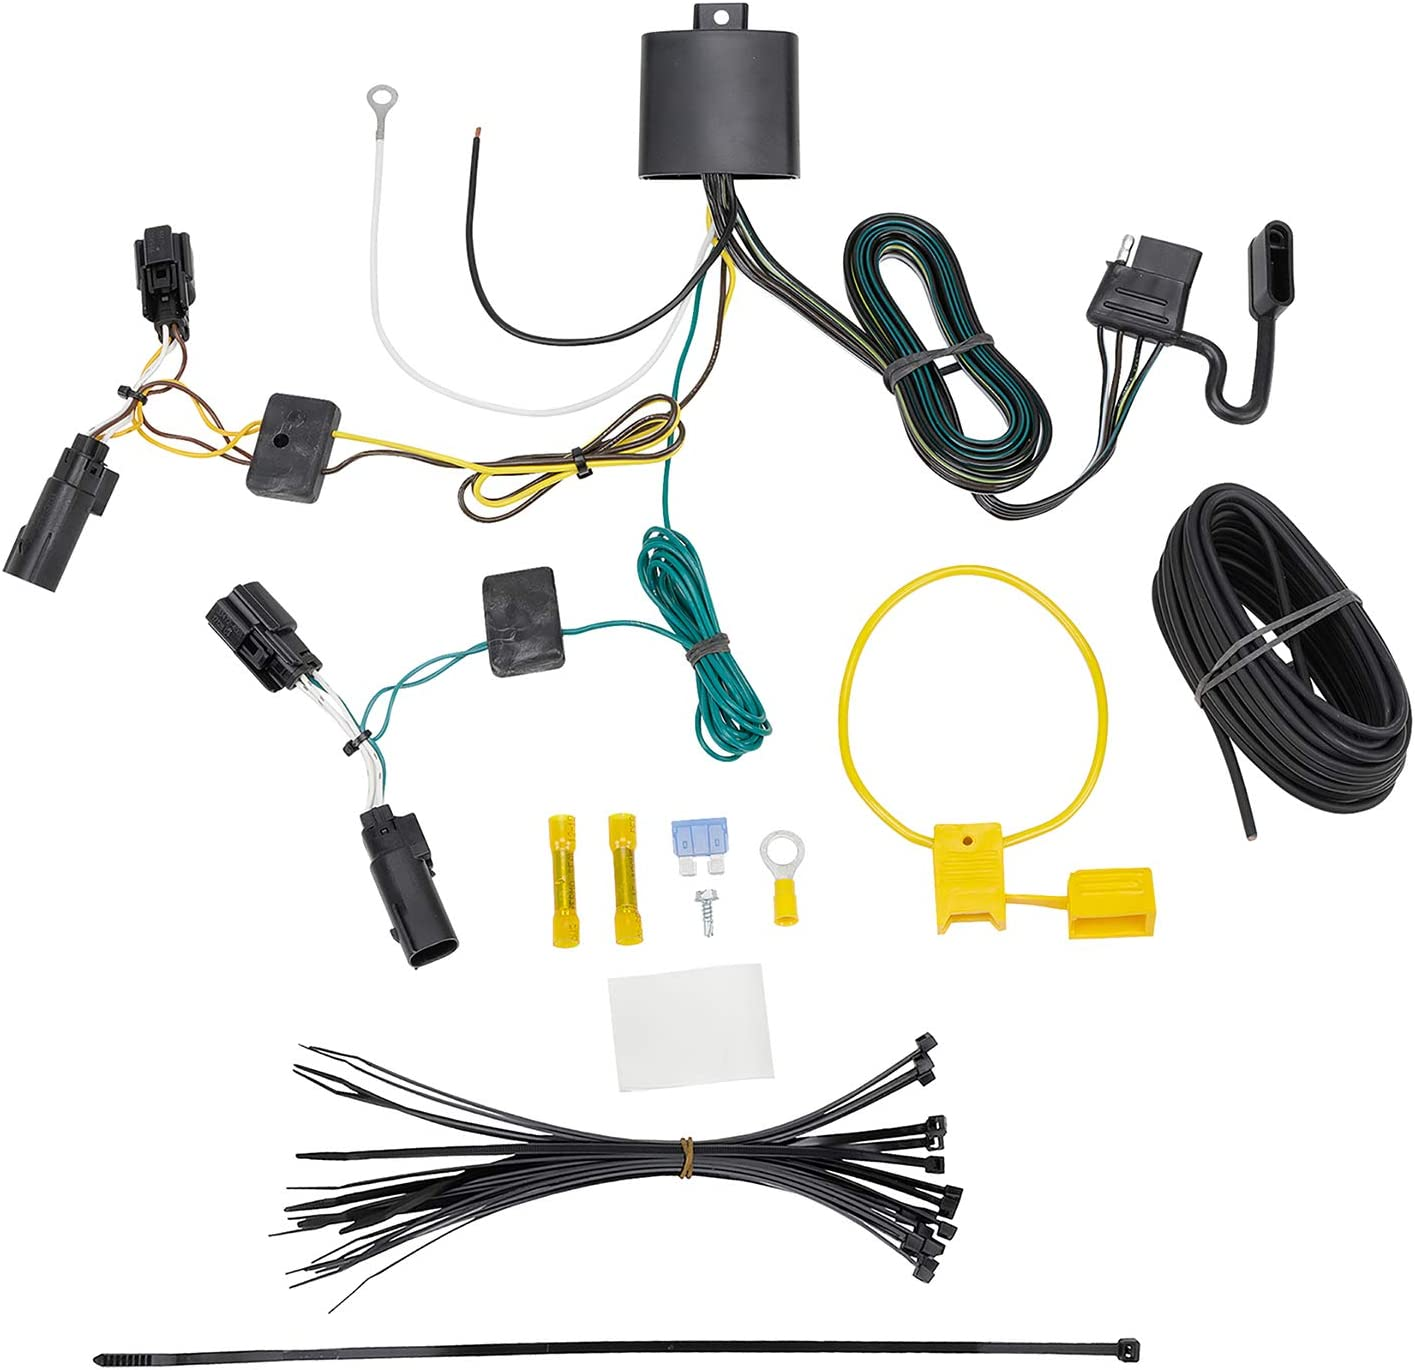 Tekonsha 118764 T-One Connector Assembly with Upgraded Circuit Protected ModuLite HD Module